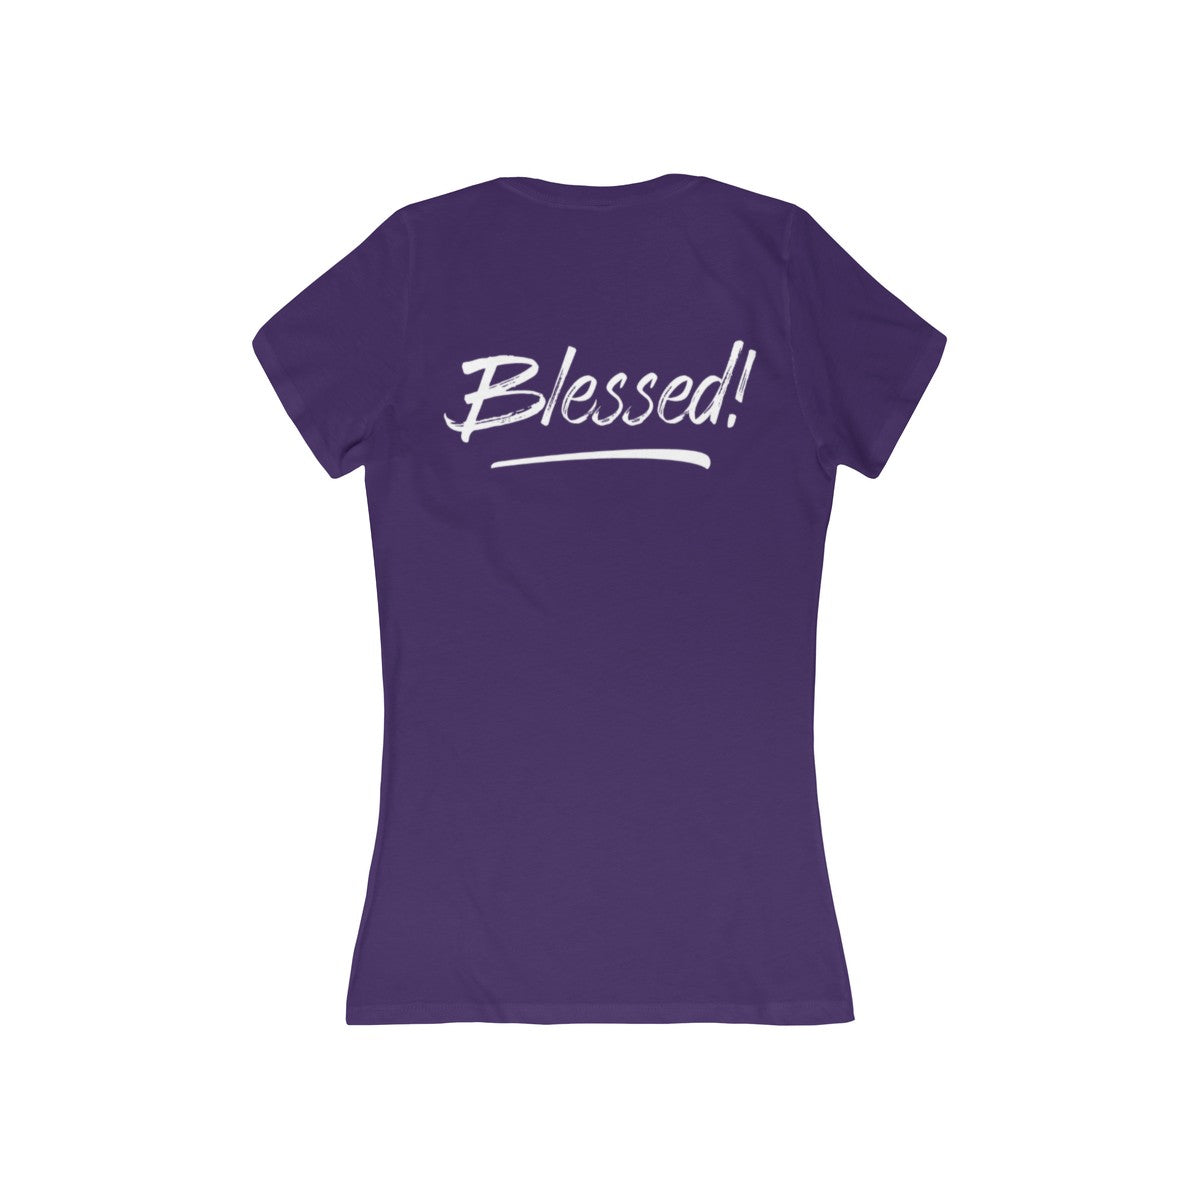 Blessed, Back Print Women's Slim Fit Deep V-Neck Tee - 8 Colors